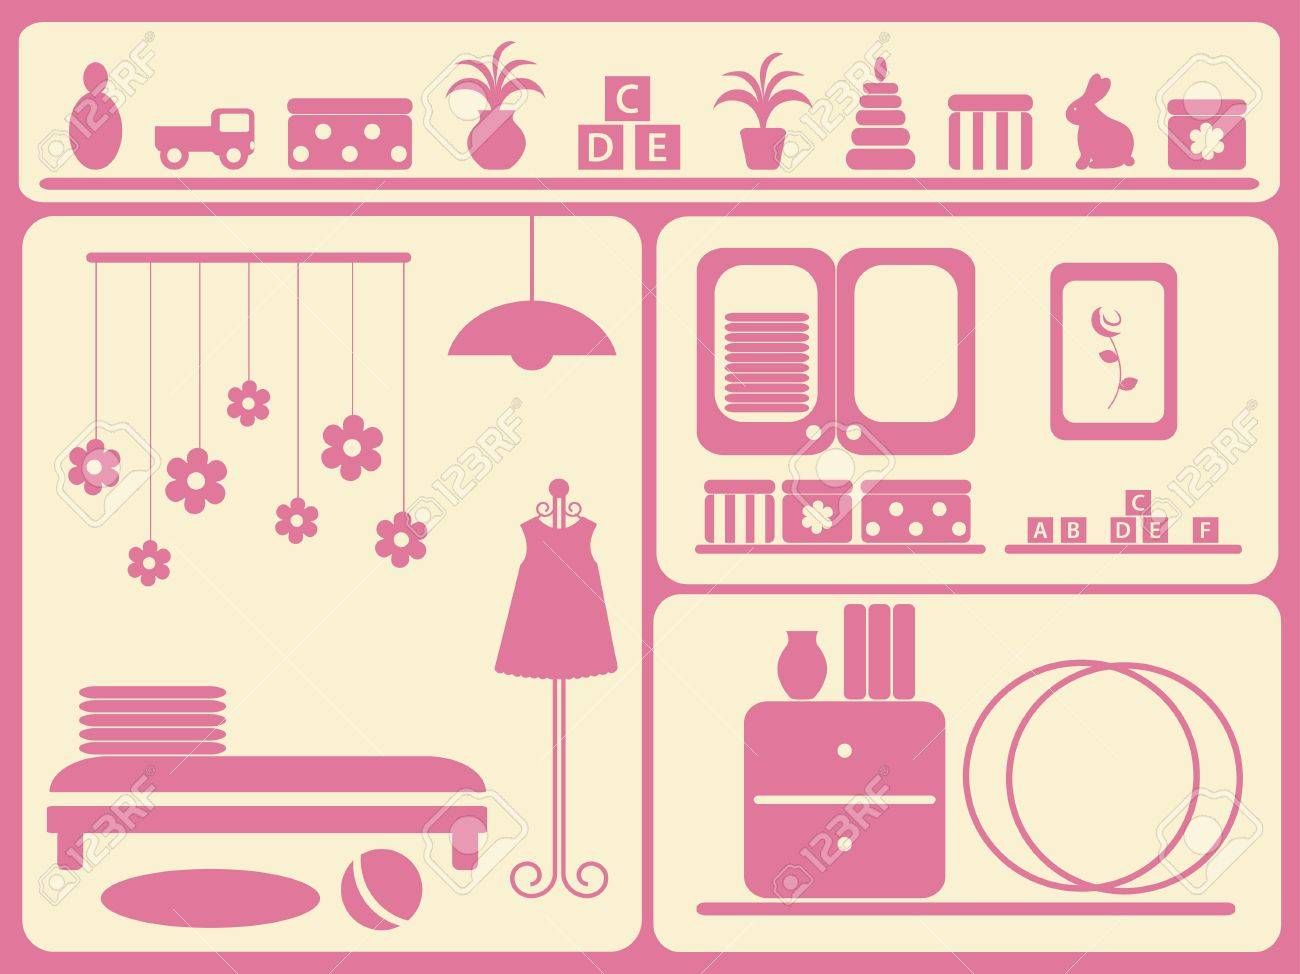 Children's room interior and objects set. Vector illustration. Stock Vector - 9292198